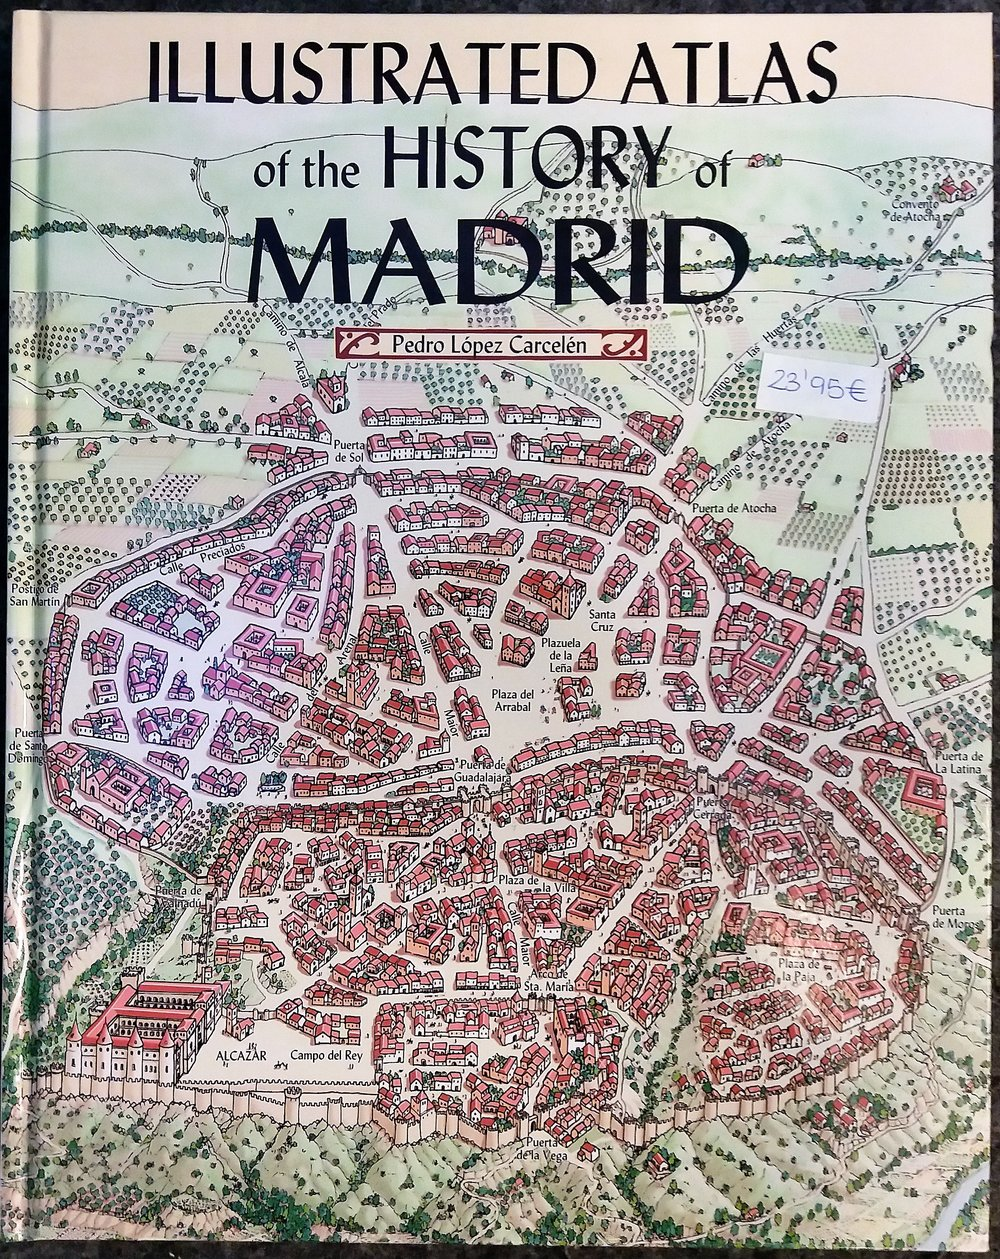 LÓPEZ CARCELÉN, Pedro.  Illustrated Atlas of the History of Madrid . Madrid: La Librería, 2010.